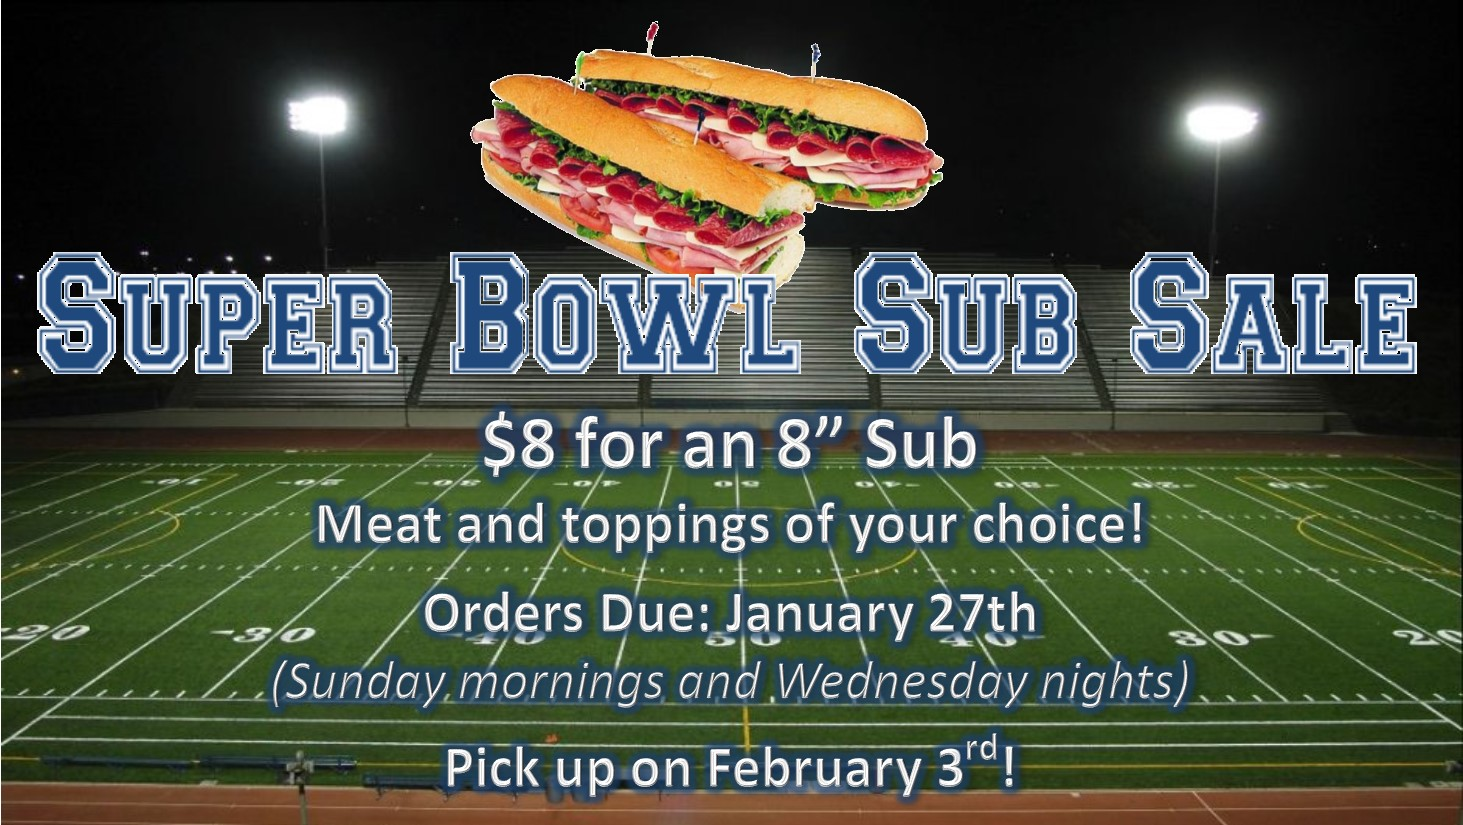 Super Bowl Sub Sale